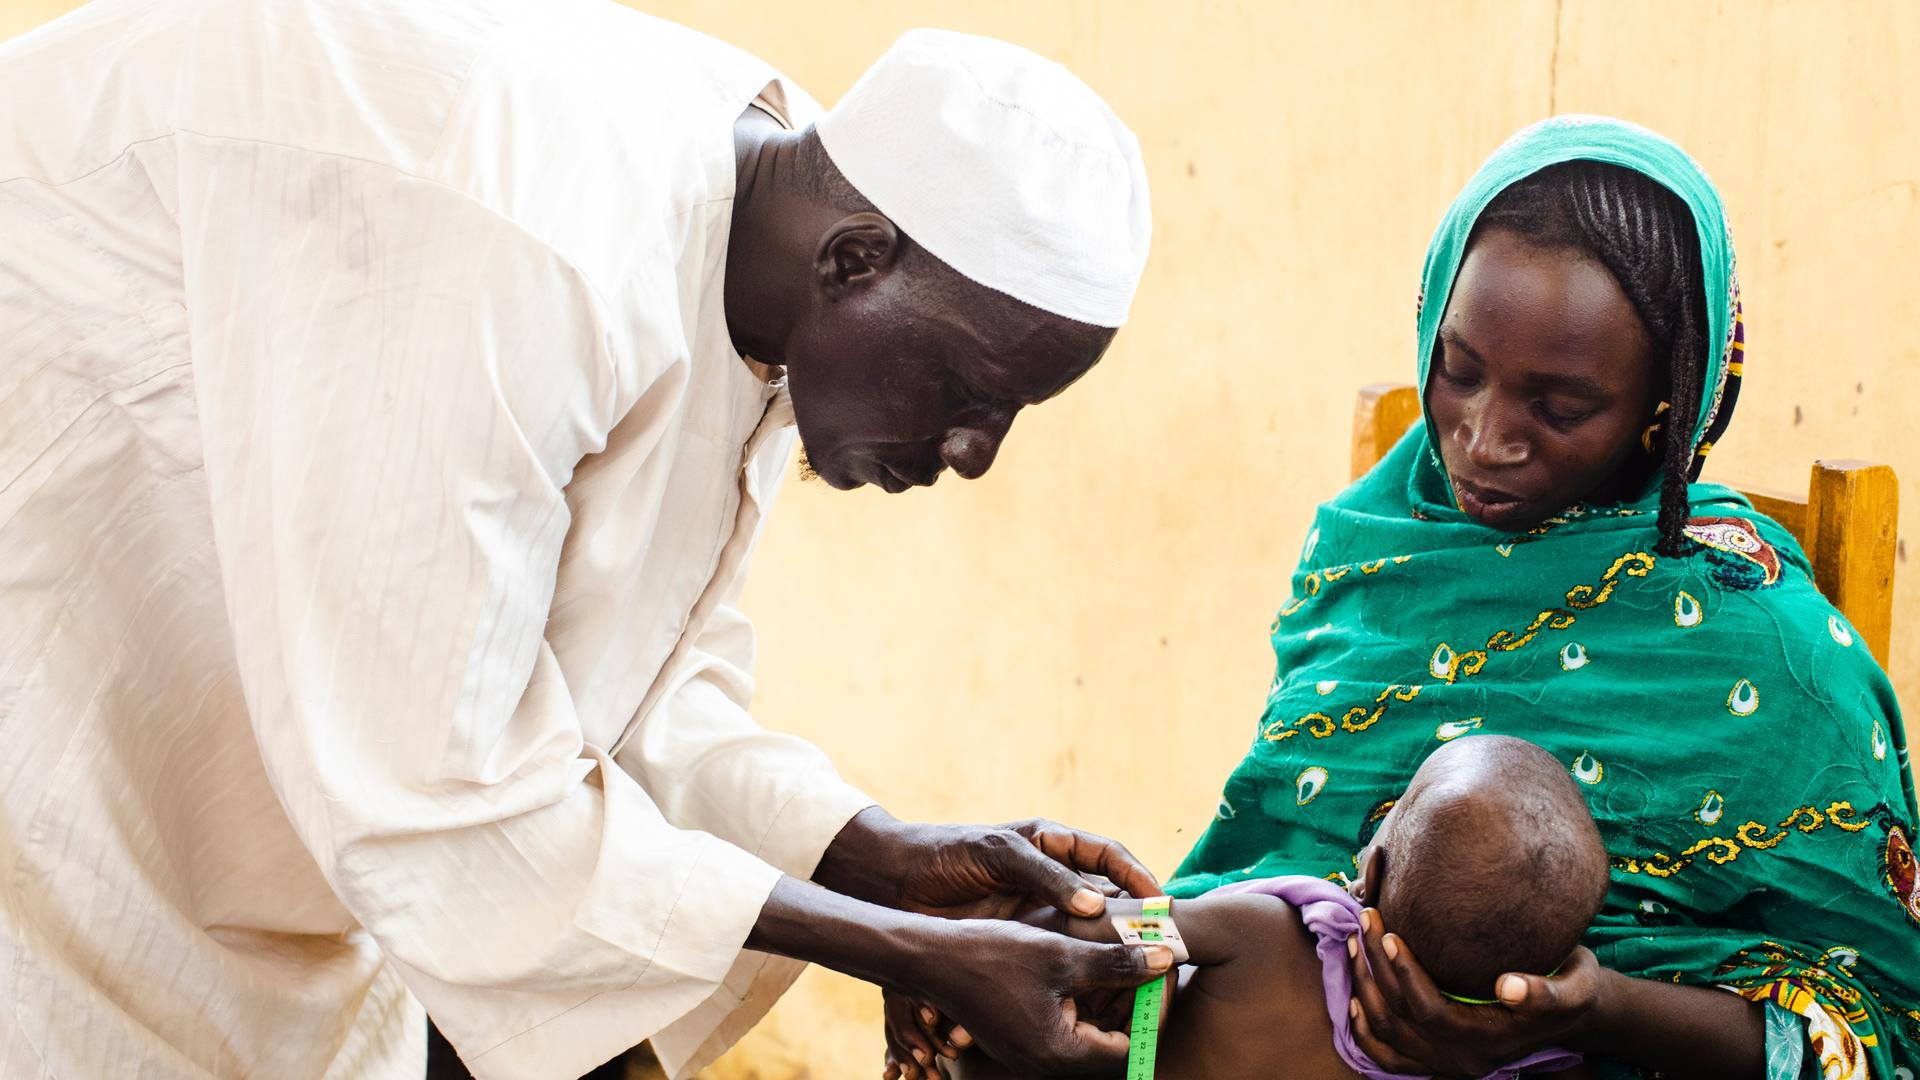 A mother holds her baby during an exam for acute malnutrition at an International Rescue Committee supported health center in Chad.